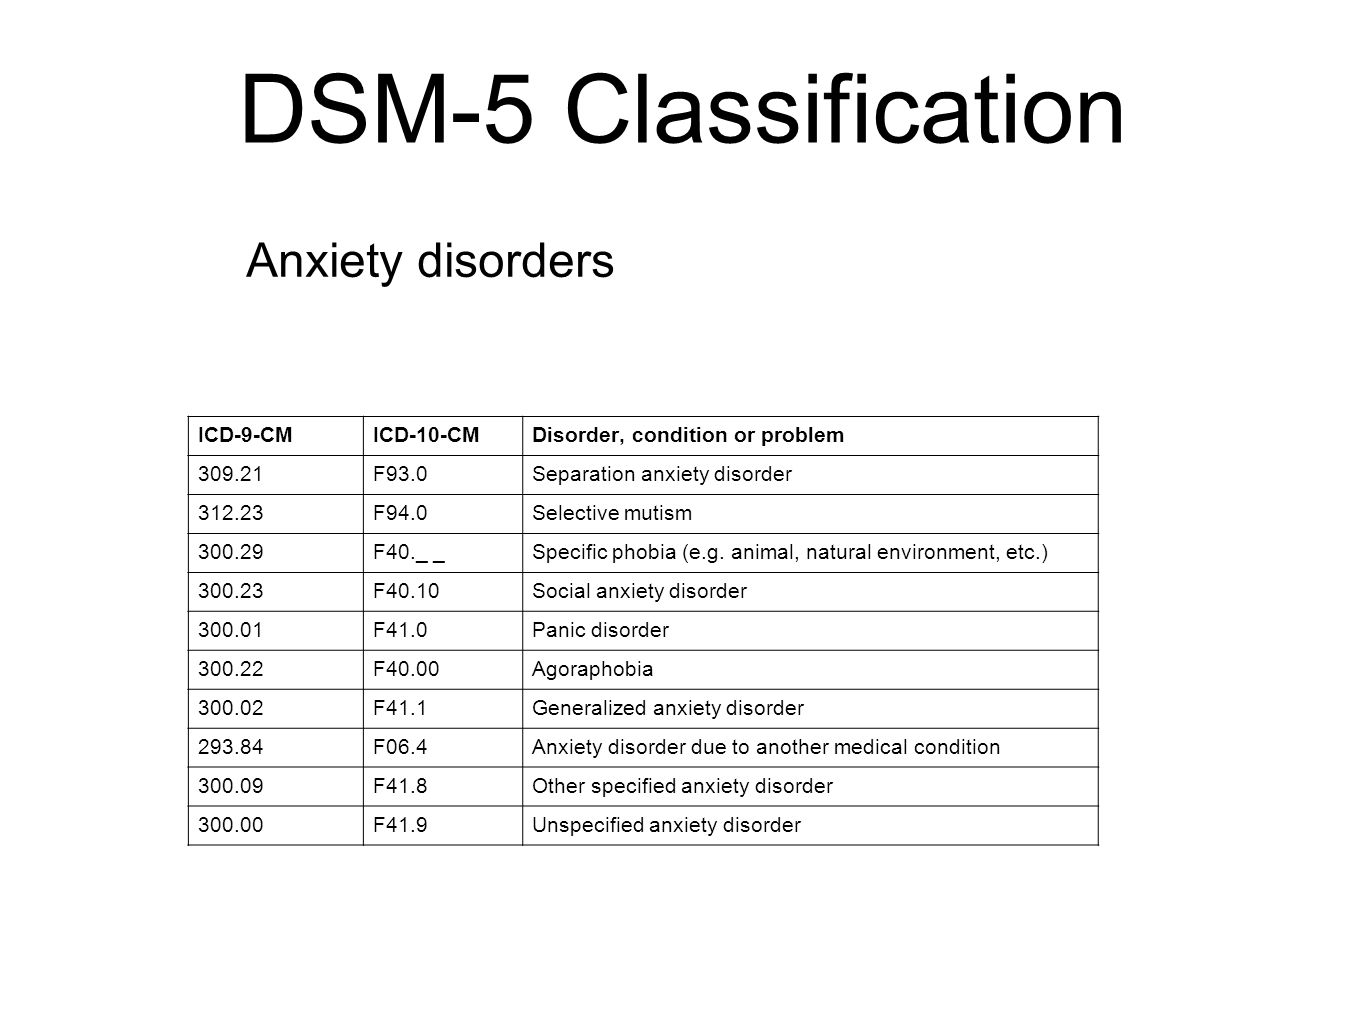 Generalized Anxiety Disorder Unspecified